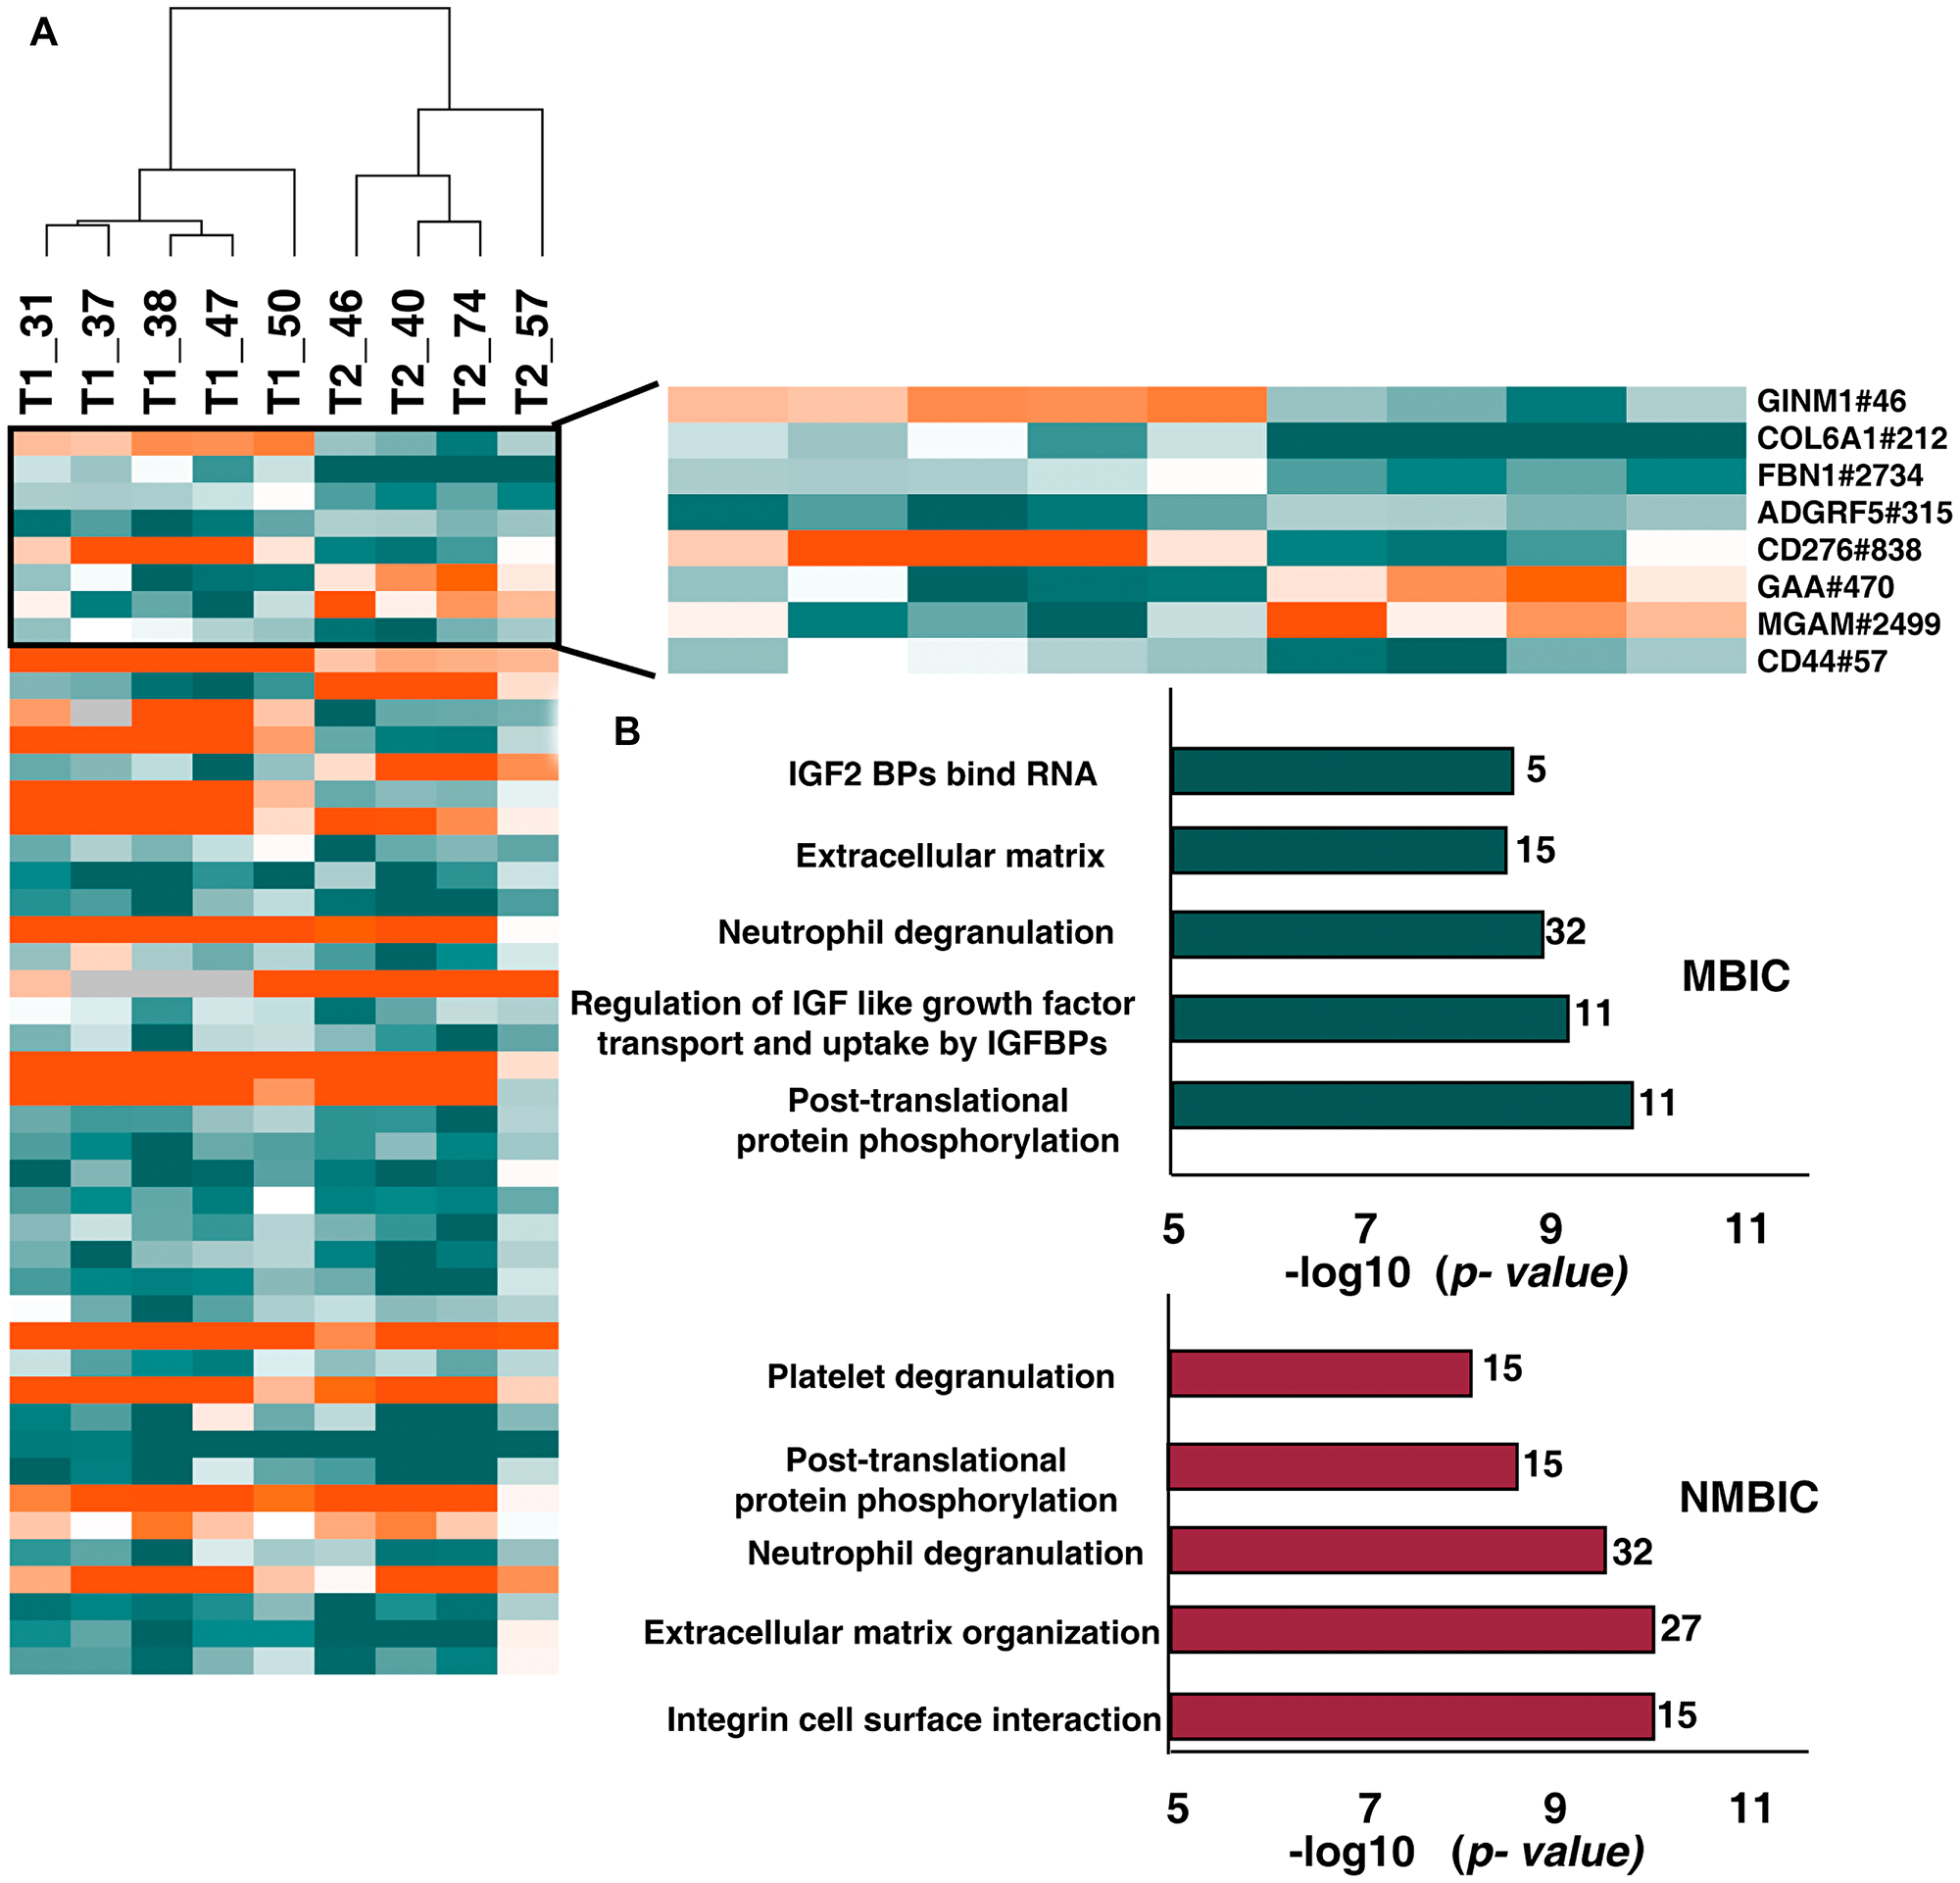 Comparison between N-glycoproteome and proteome of NMIBC and MIBC patients.